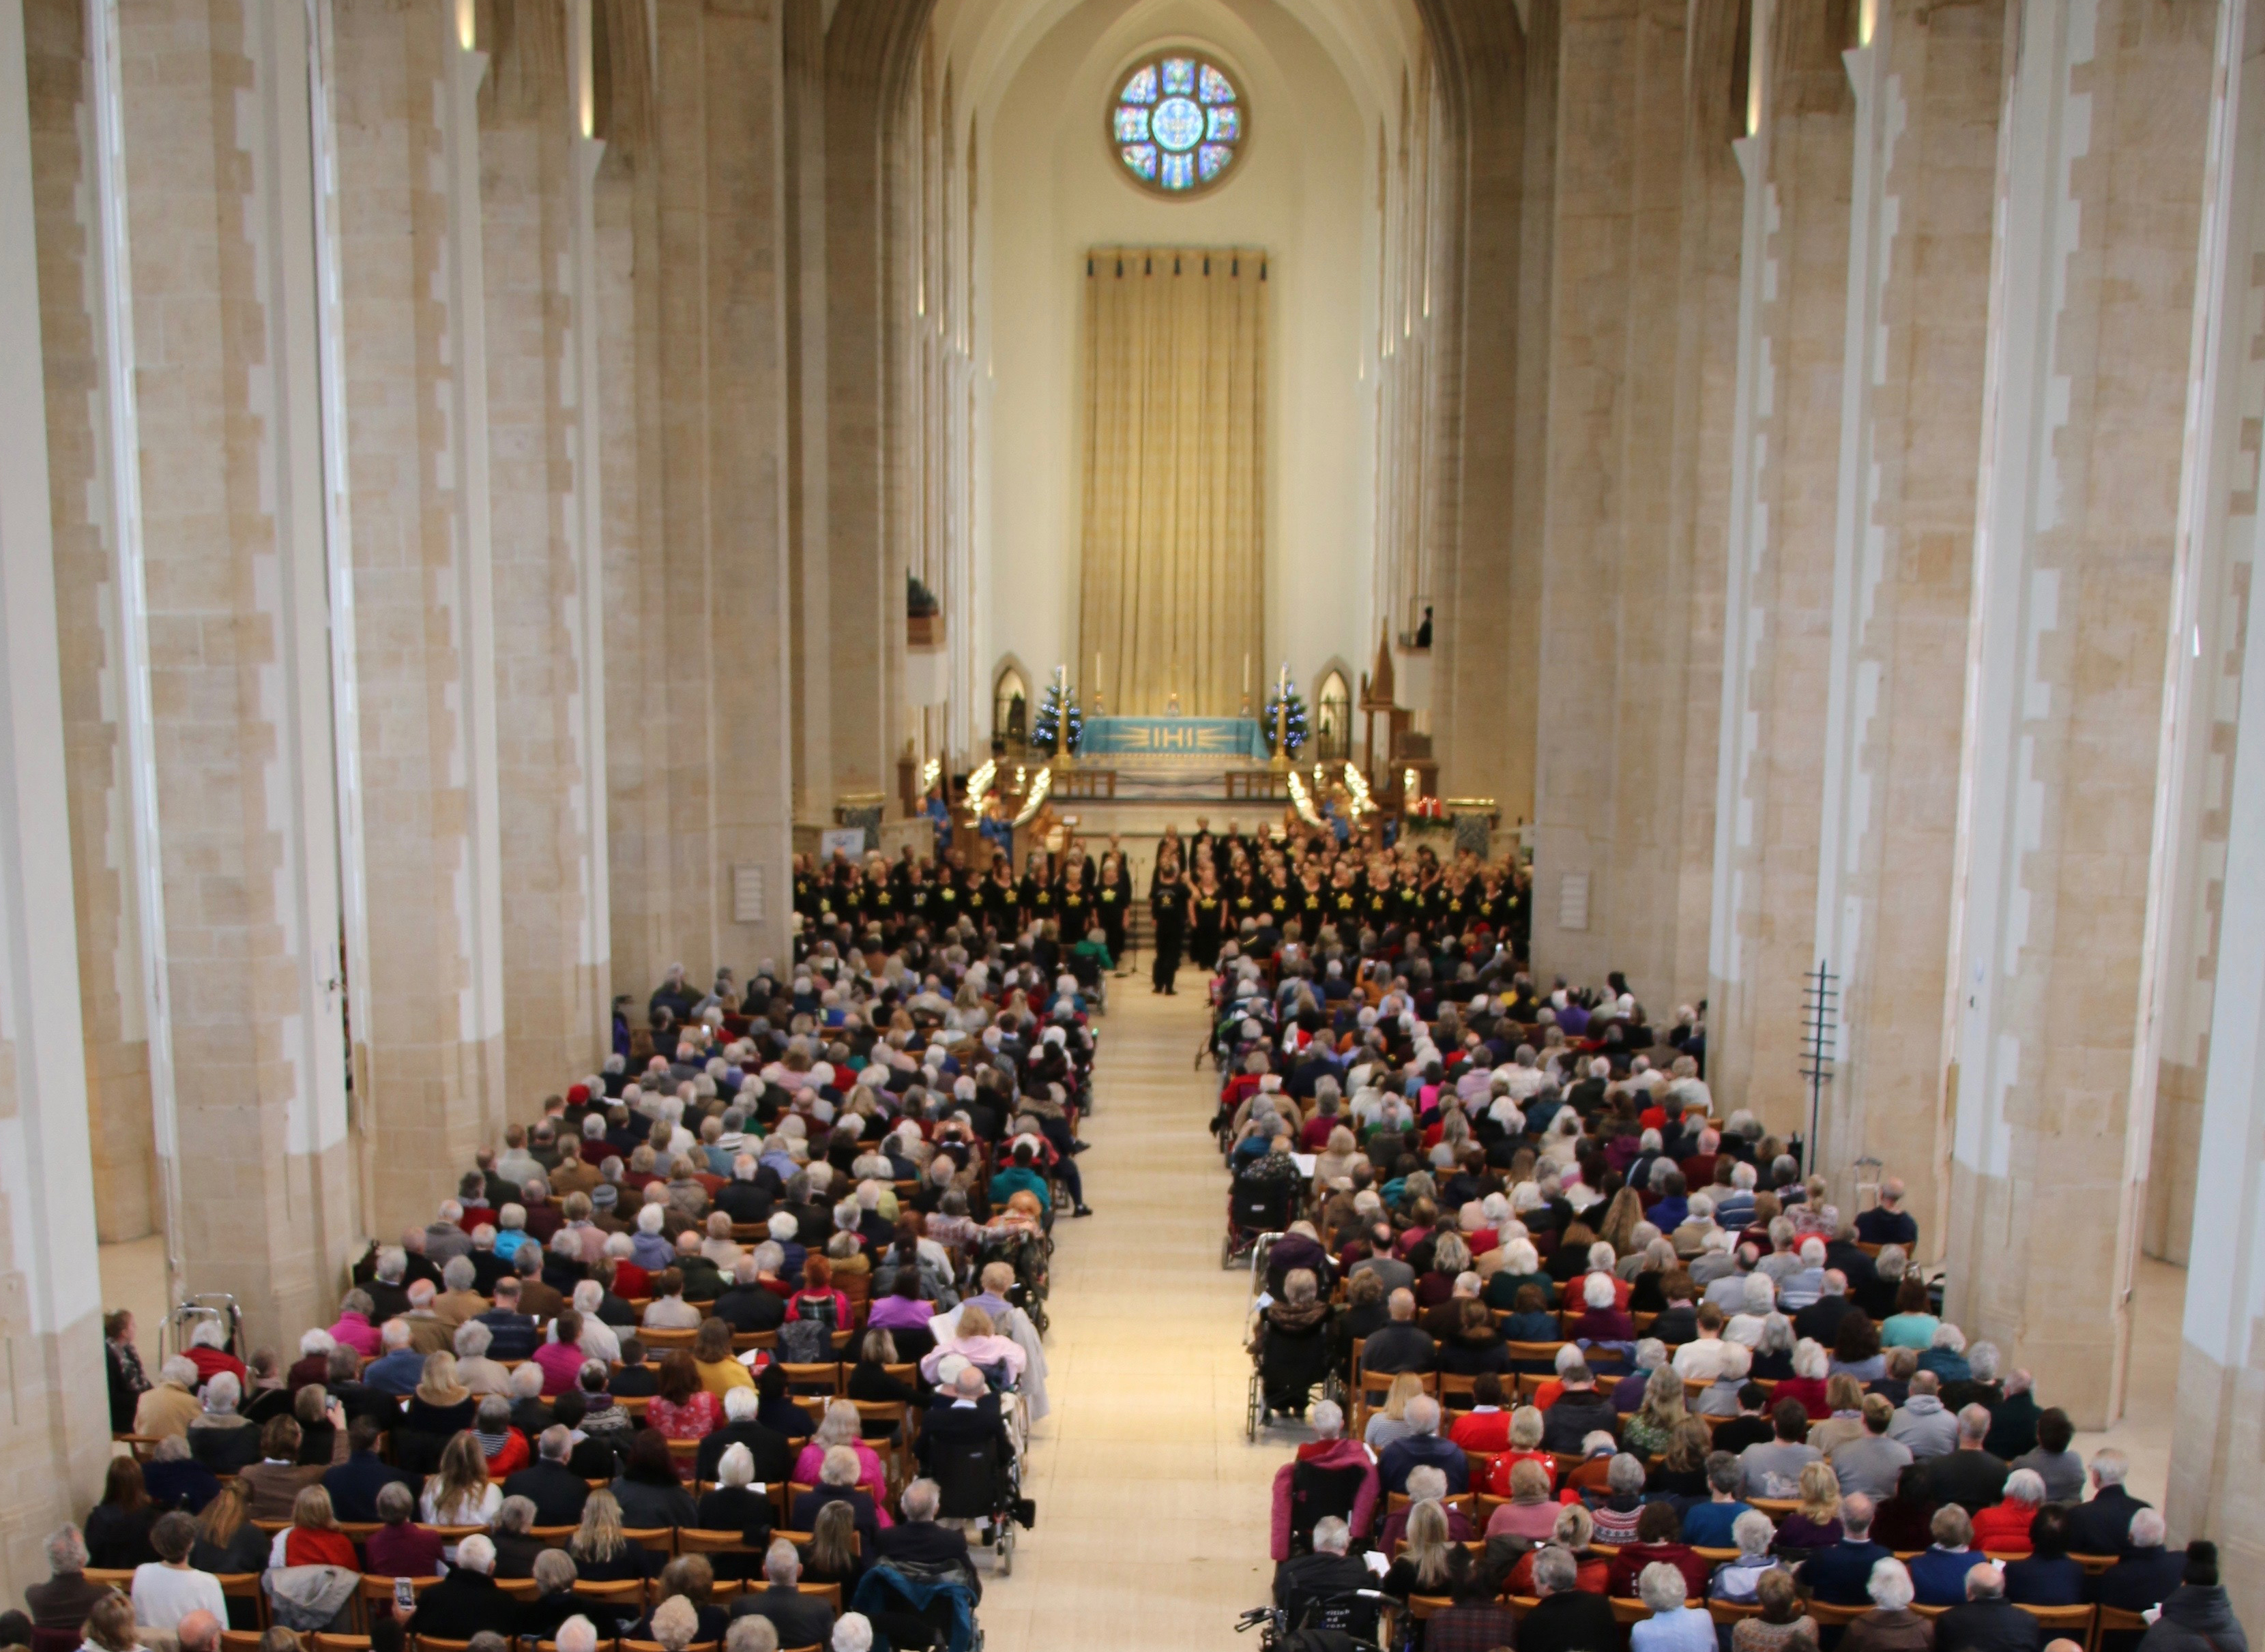 Carol Service at Guildford Cathedral